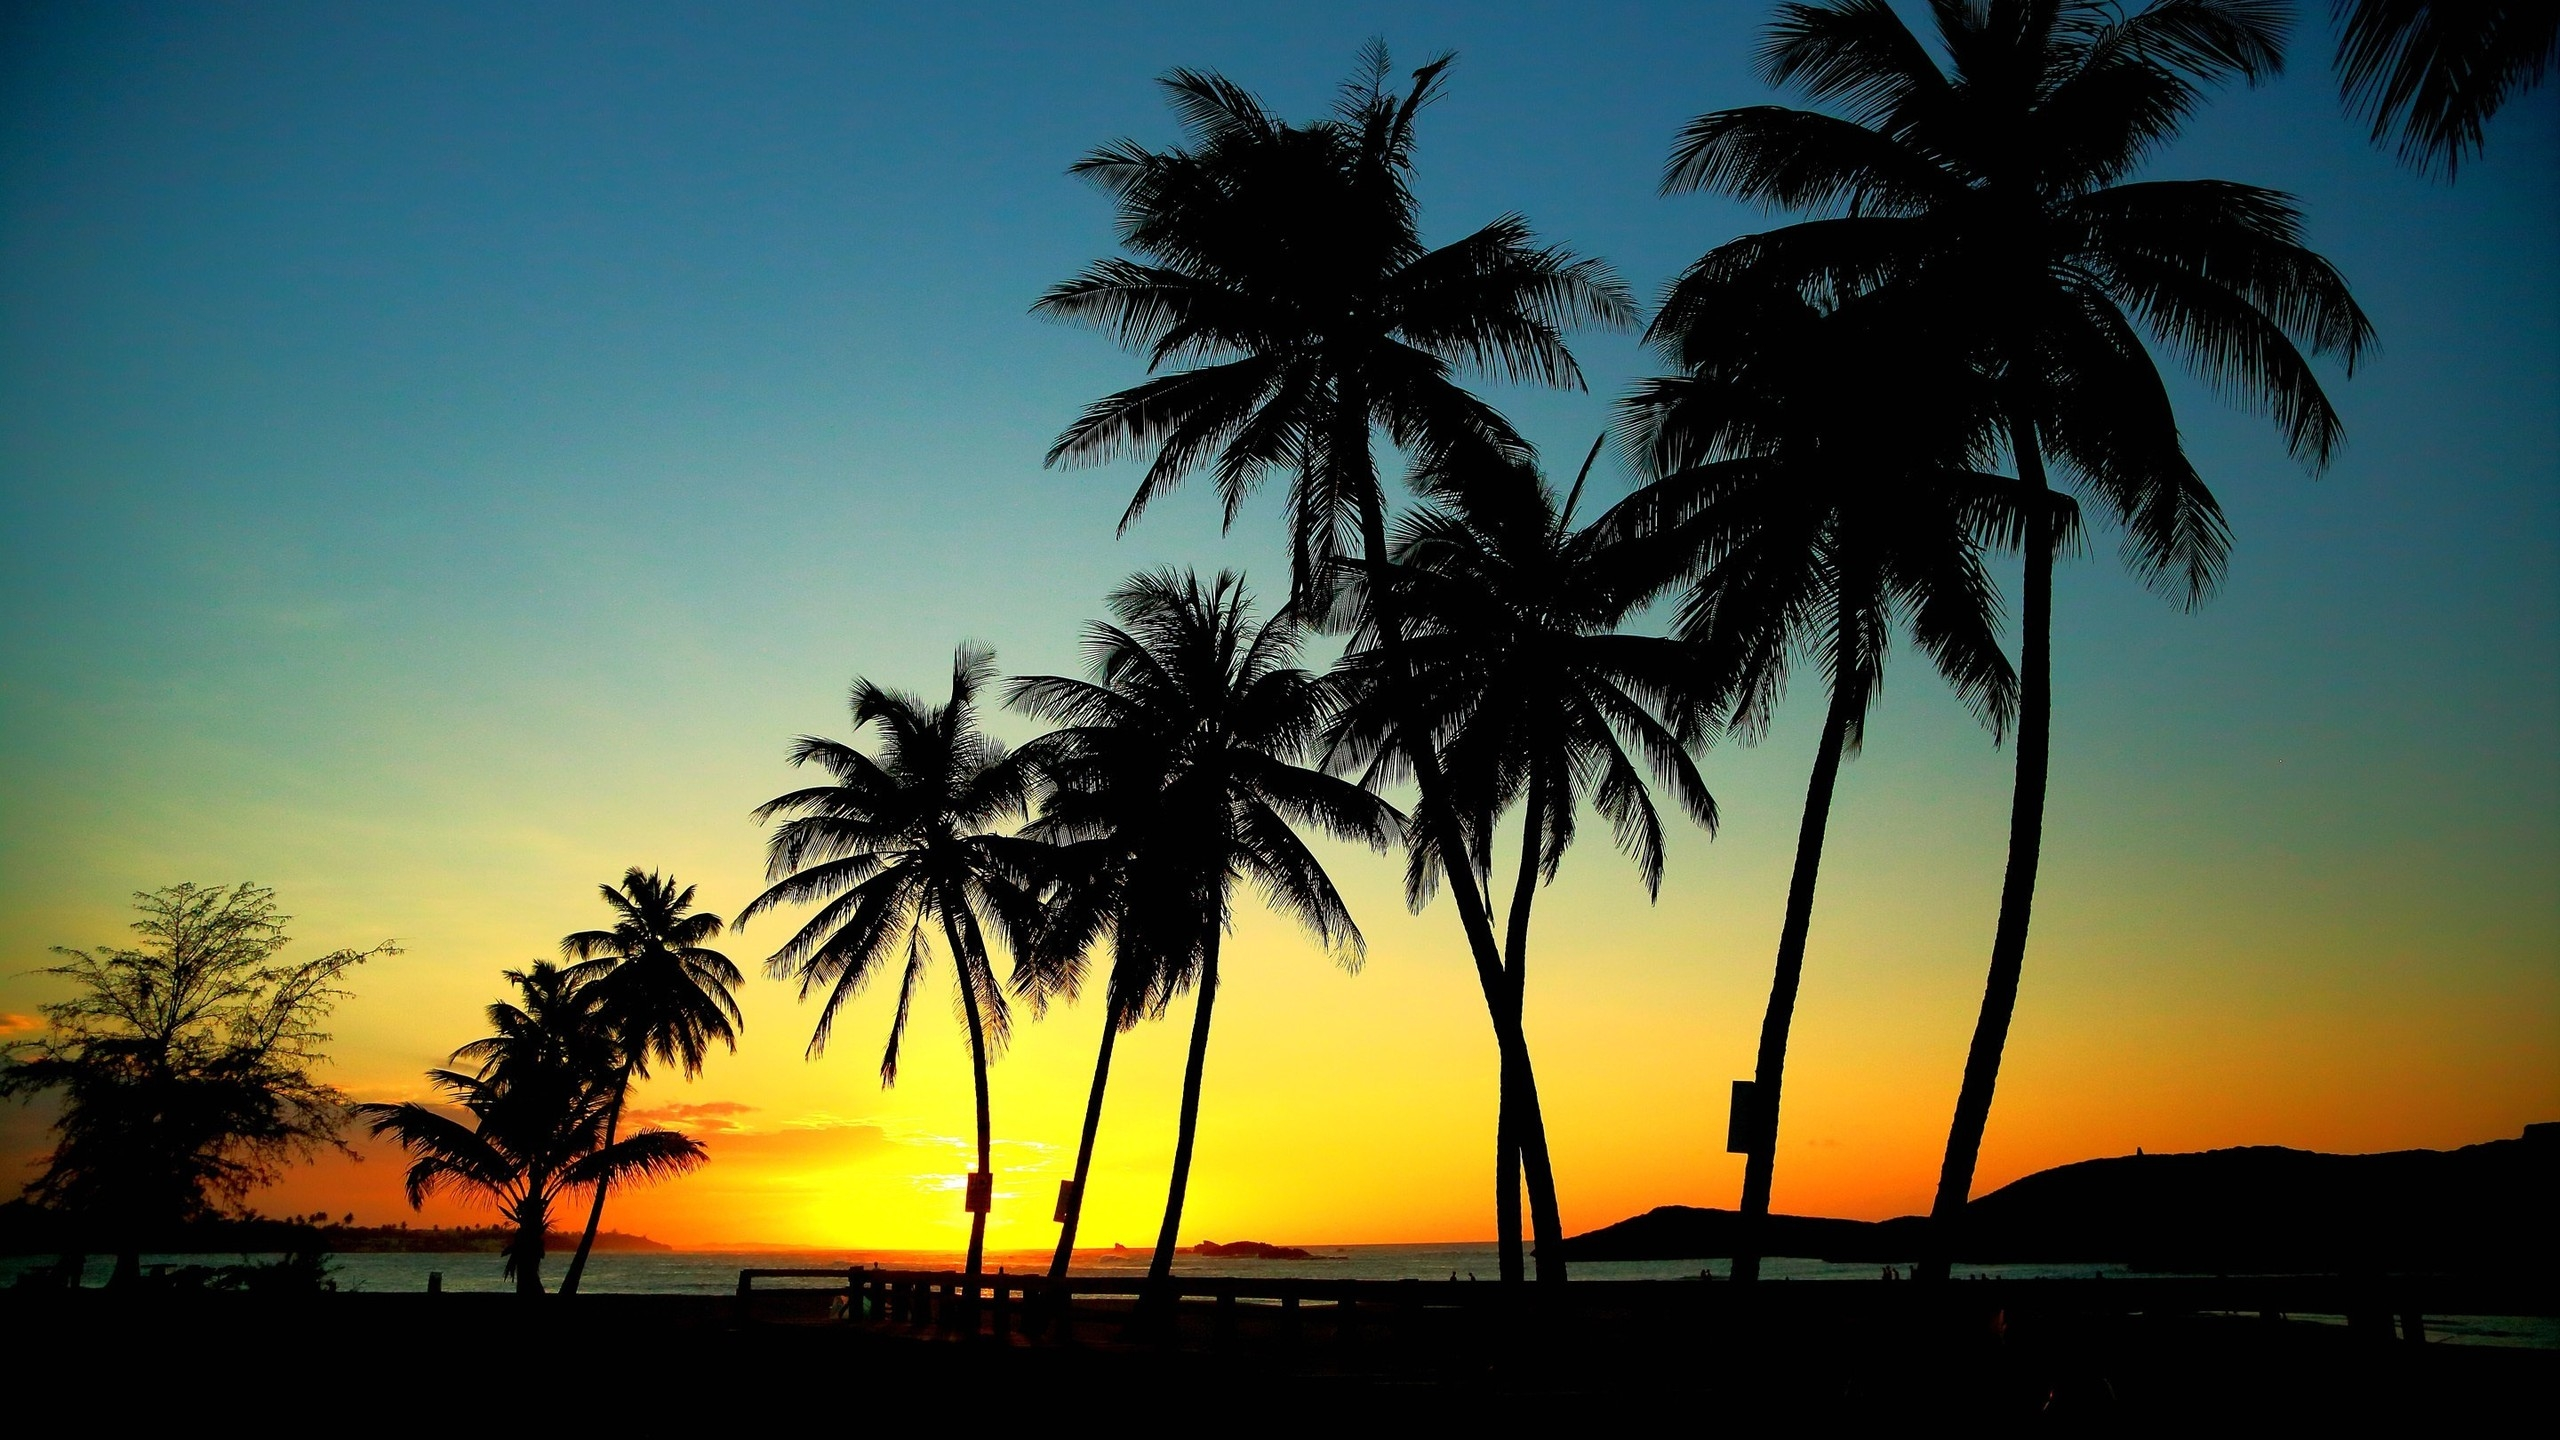 Palm Trees in Sunset for 2560x1440 HDTV resolution